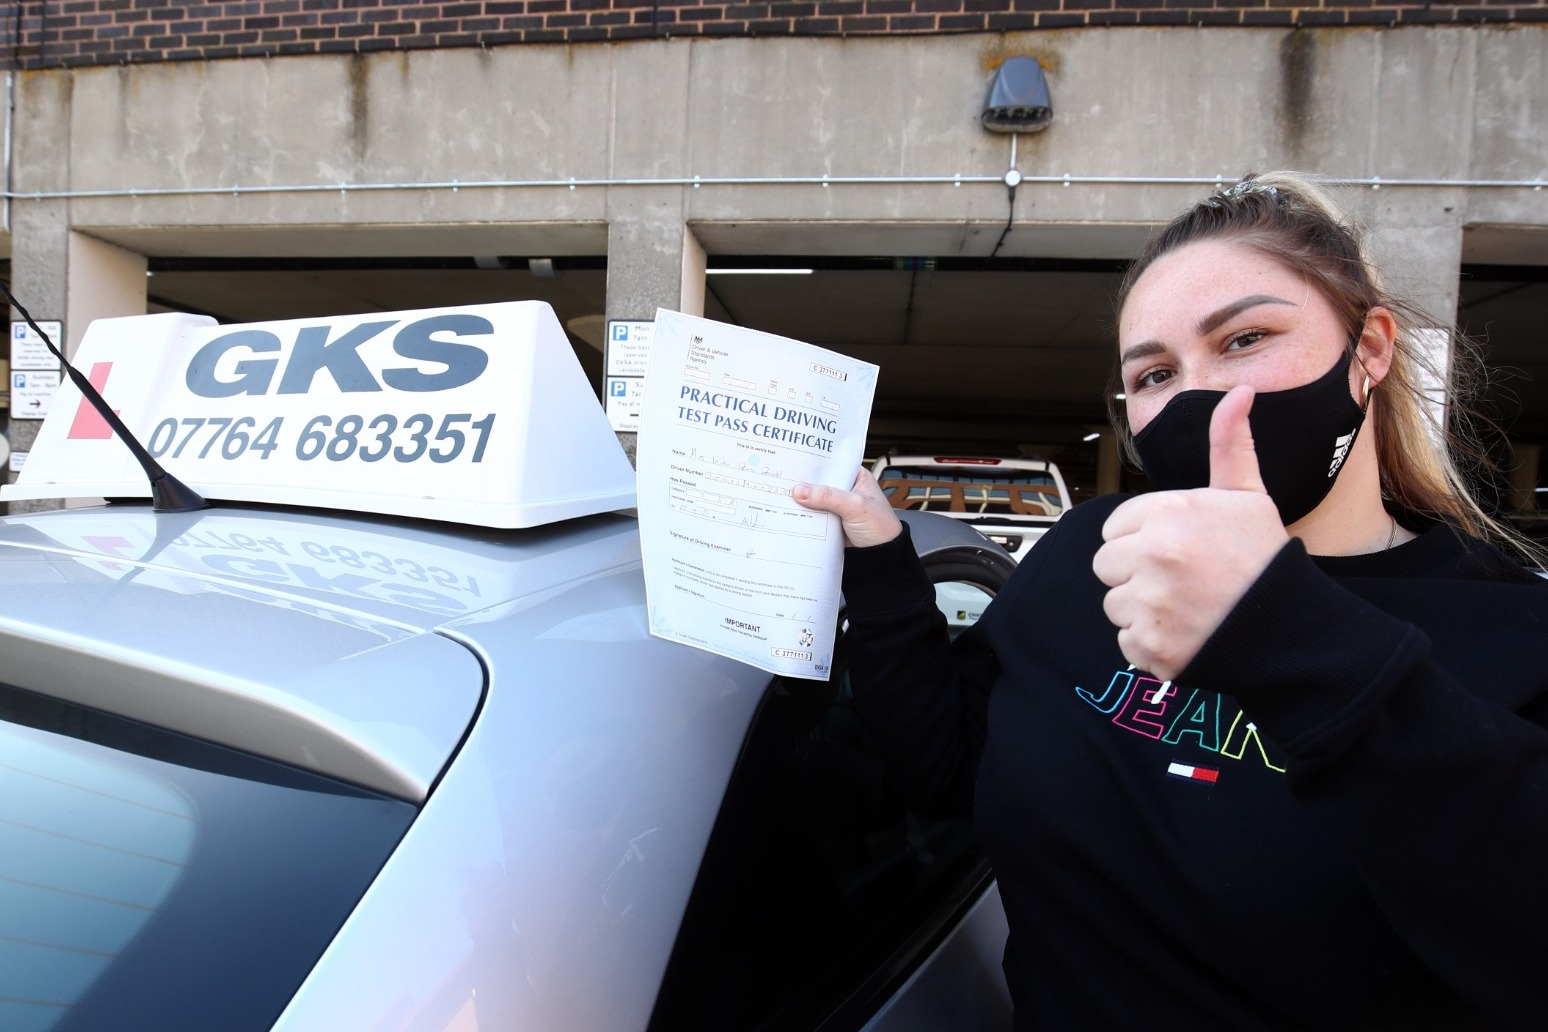 More pressure to pass as driving tests resume